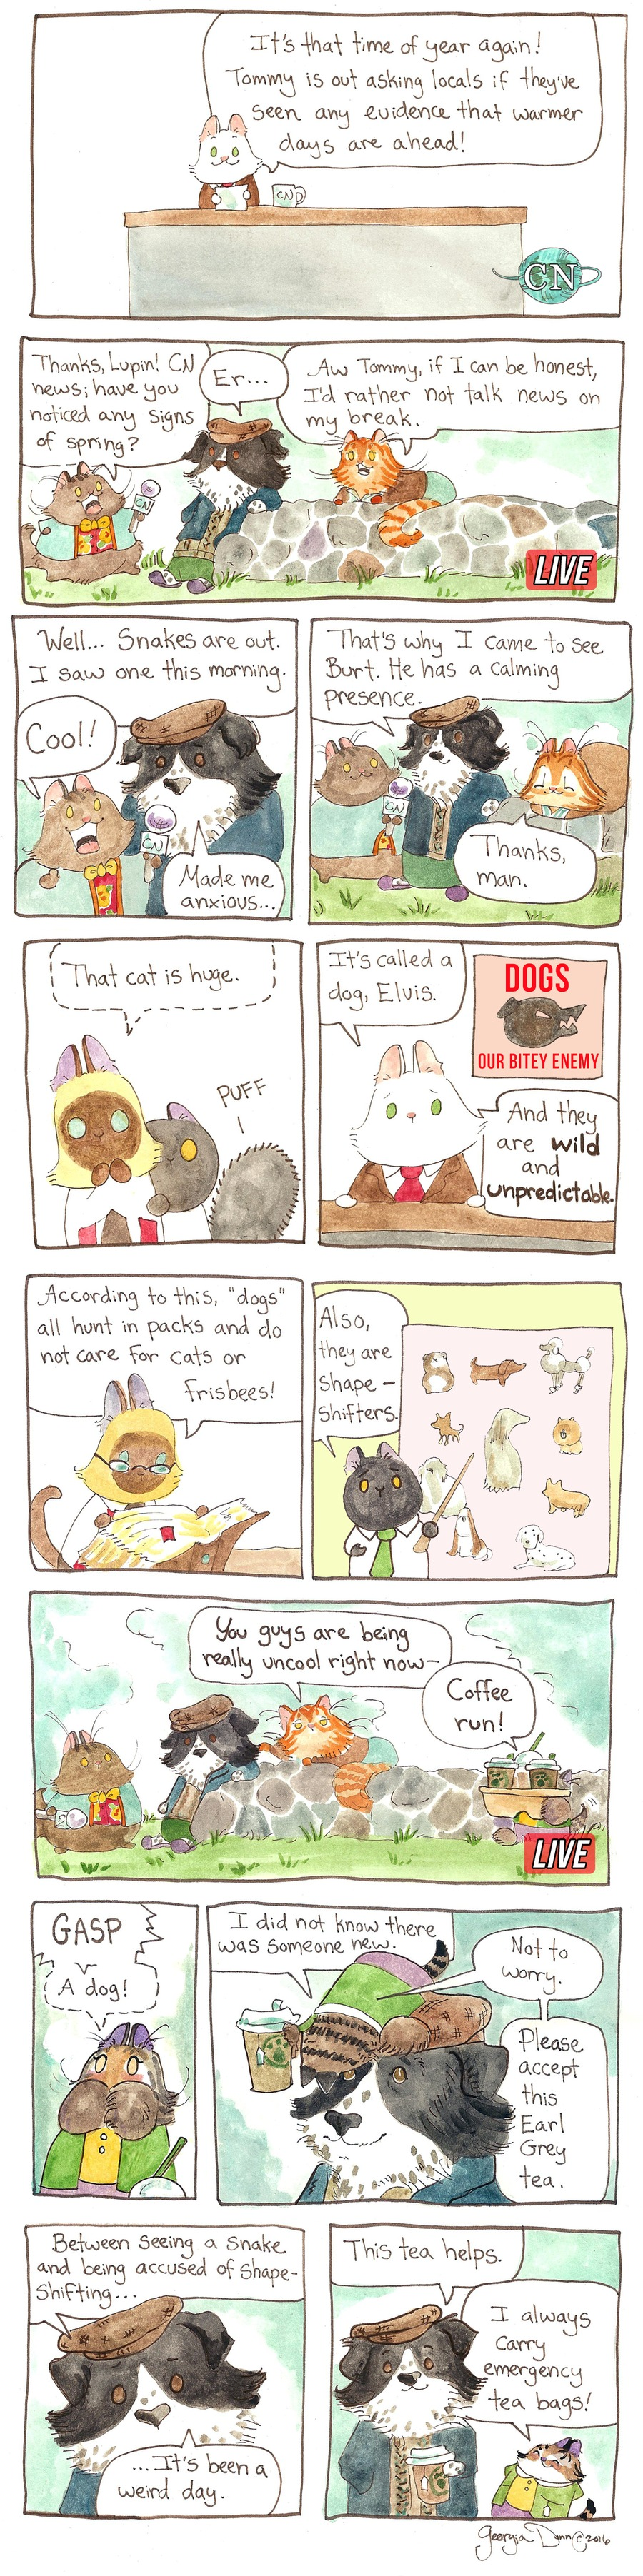 Breaking Cat News for May 15, 2016 Comic Strip